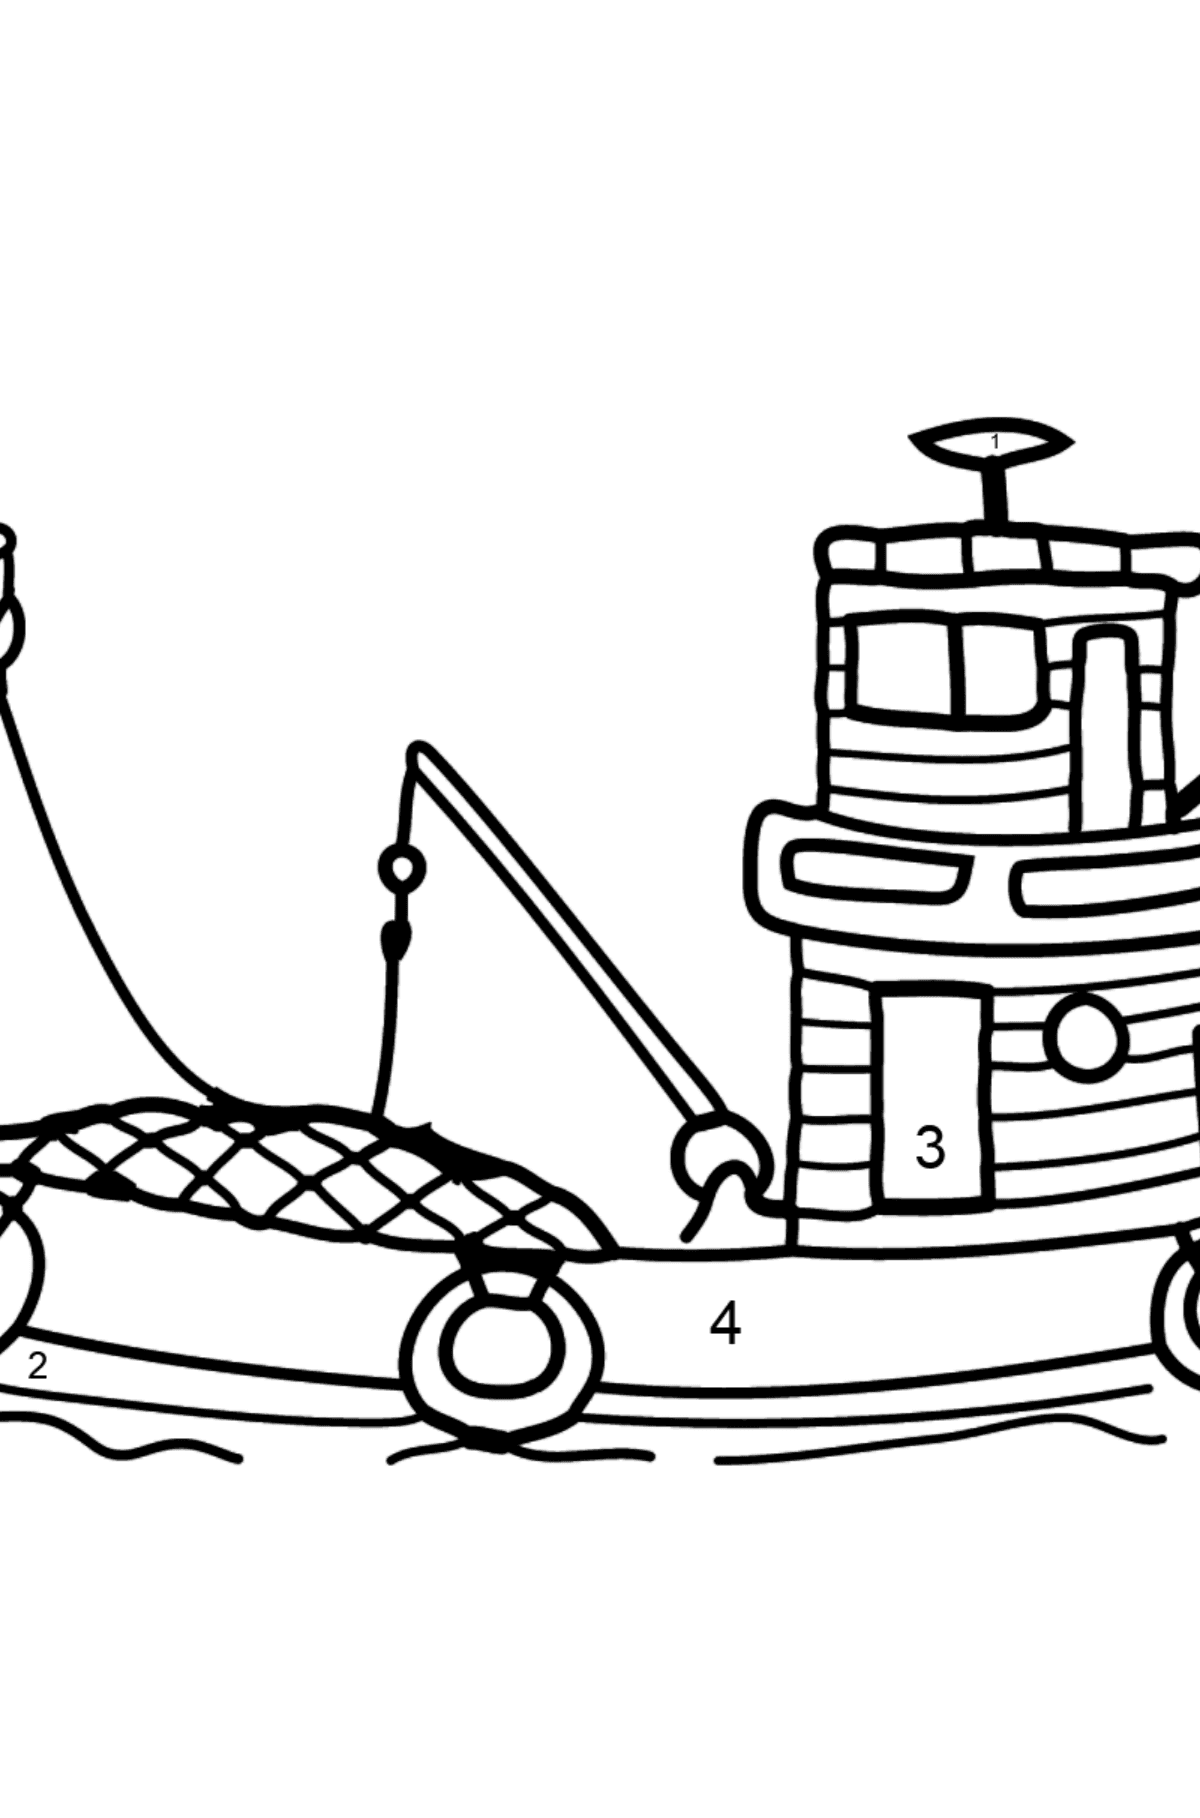 Coloring Page - A Fishing Boat - Coloring by Numbers for Kids